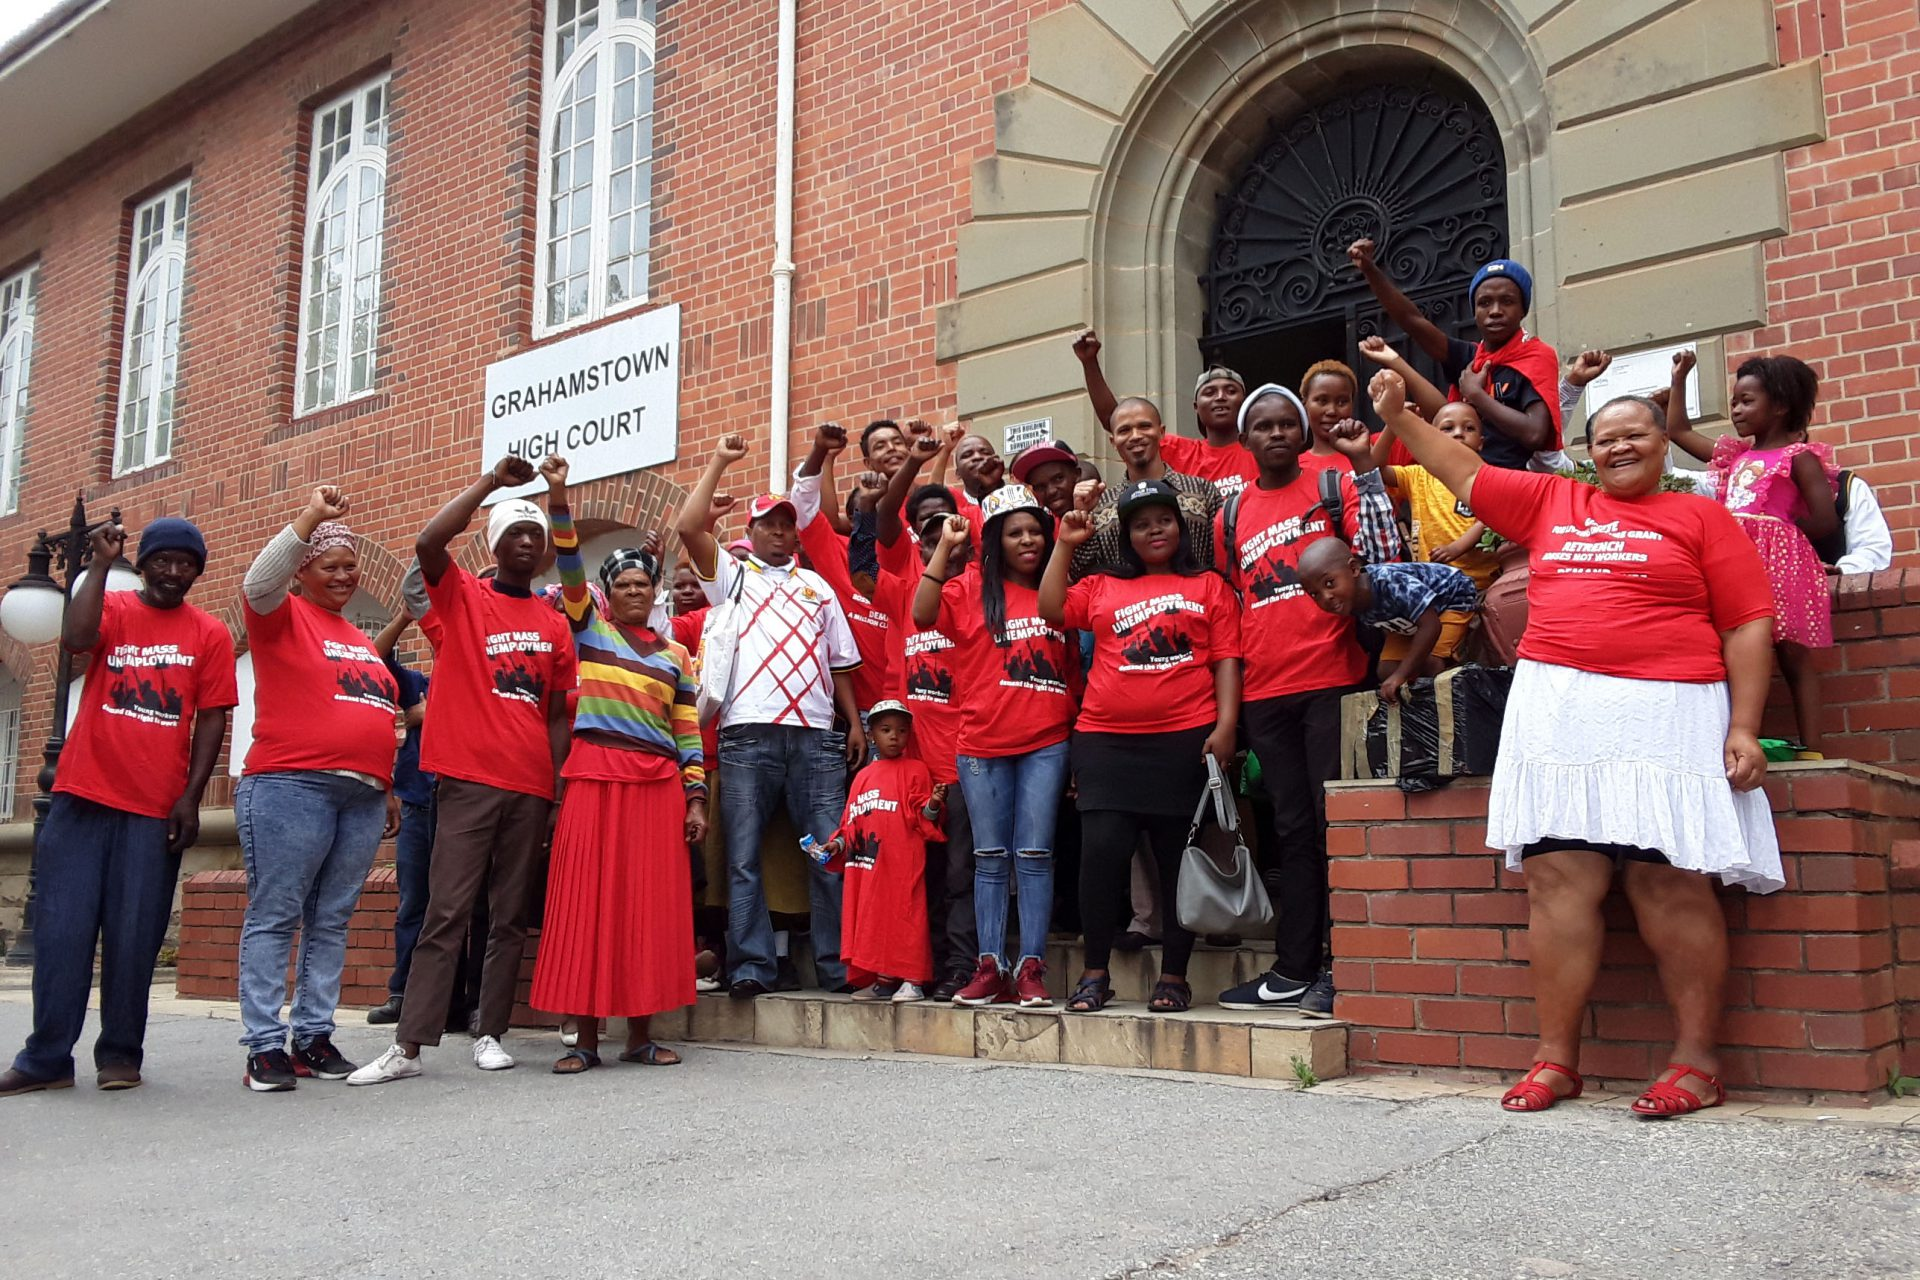 Members of the Unemployed Peoples Movement celebrate the Makhanda High Court ruling that the Makana municipality must be dissolved. (Photograph by Anna Majavu, New Frame)